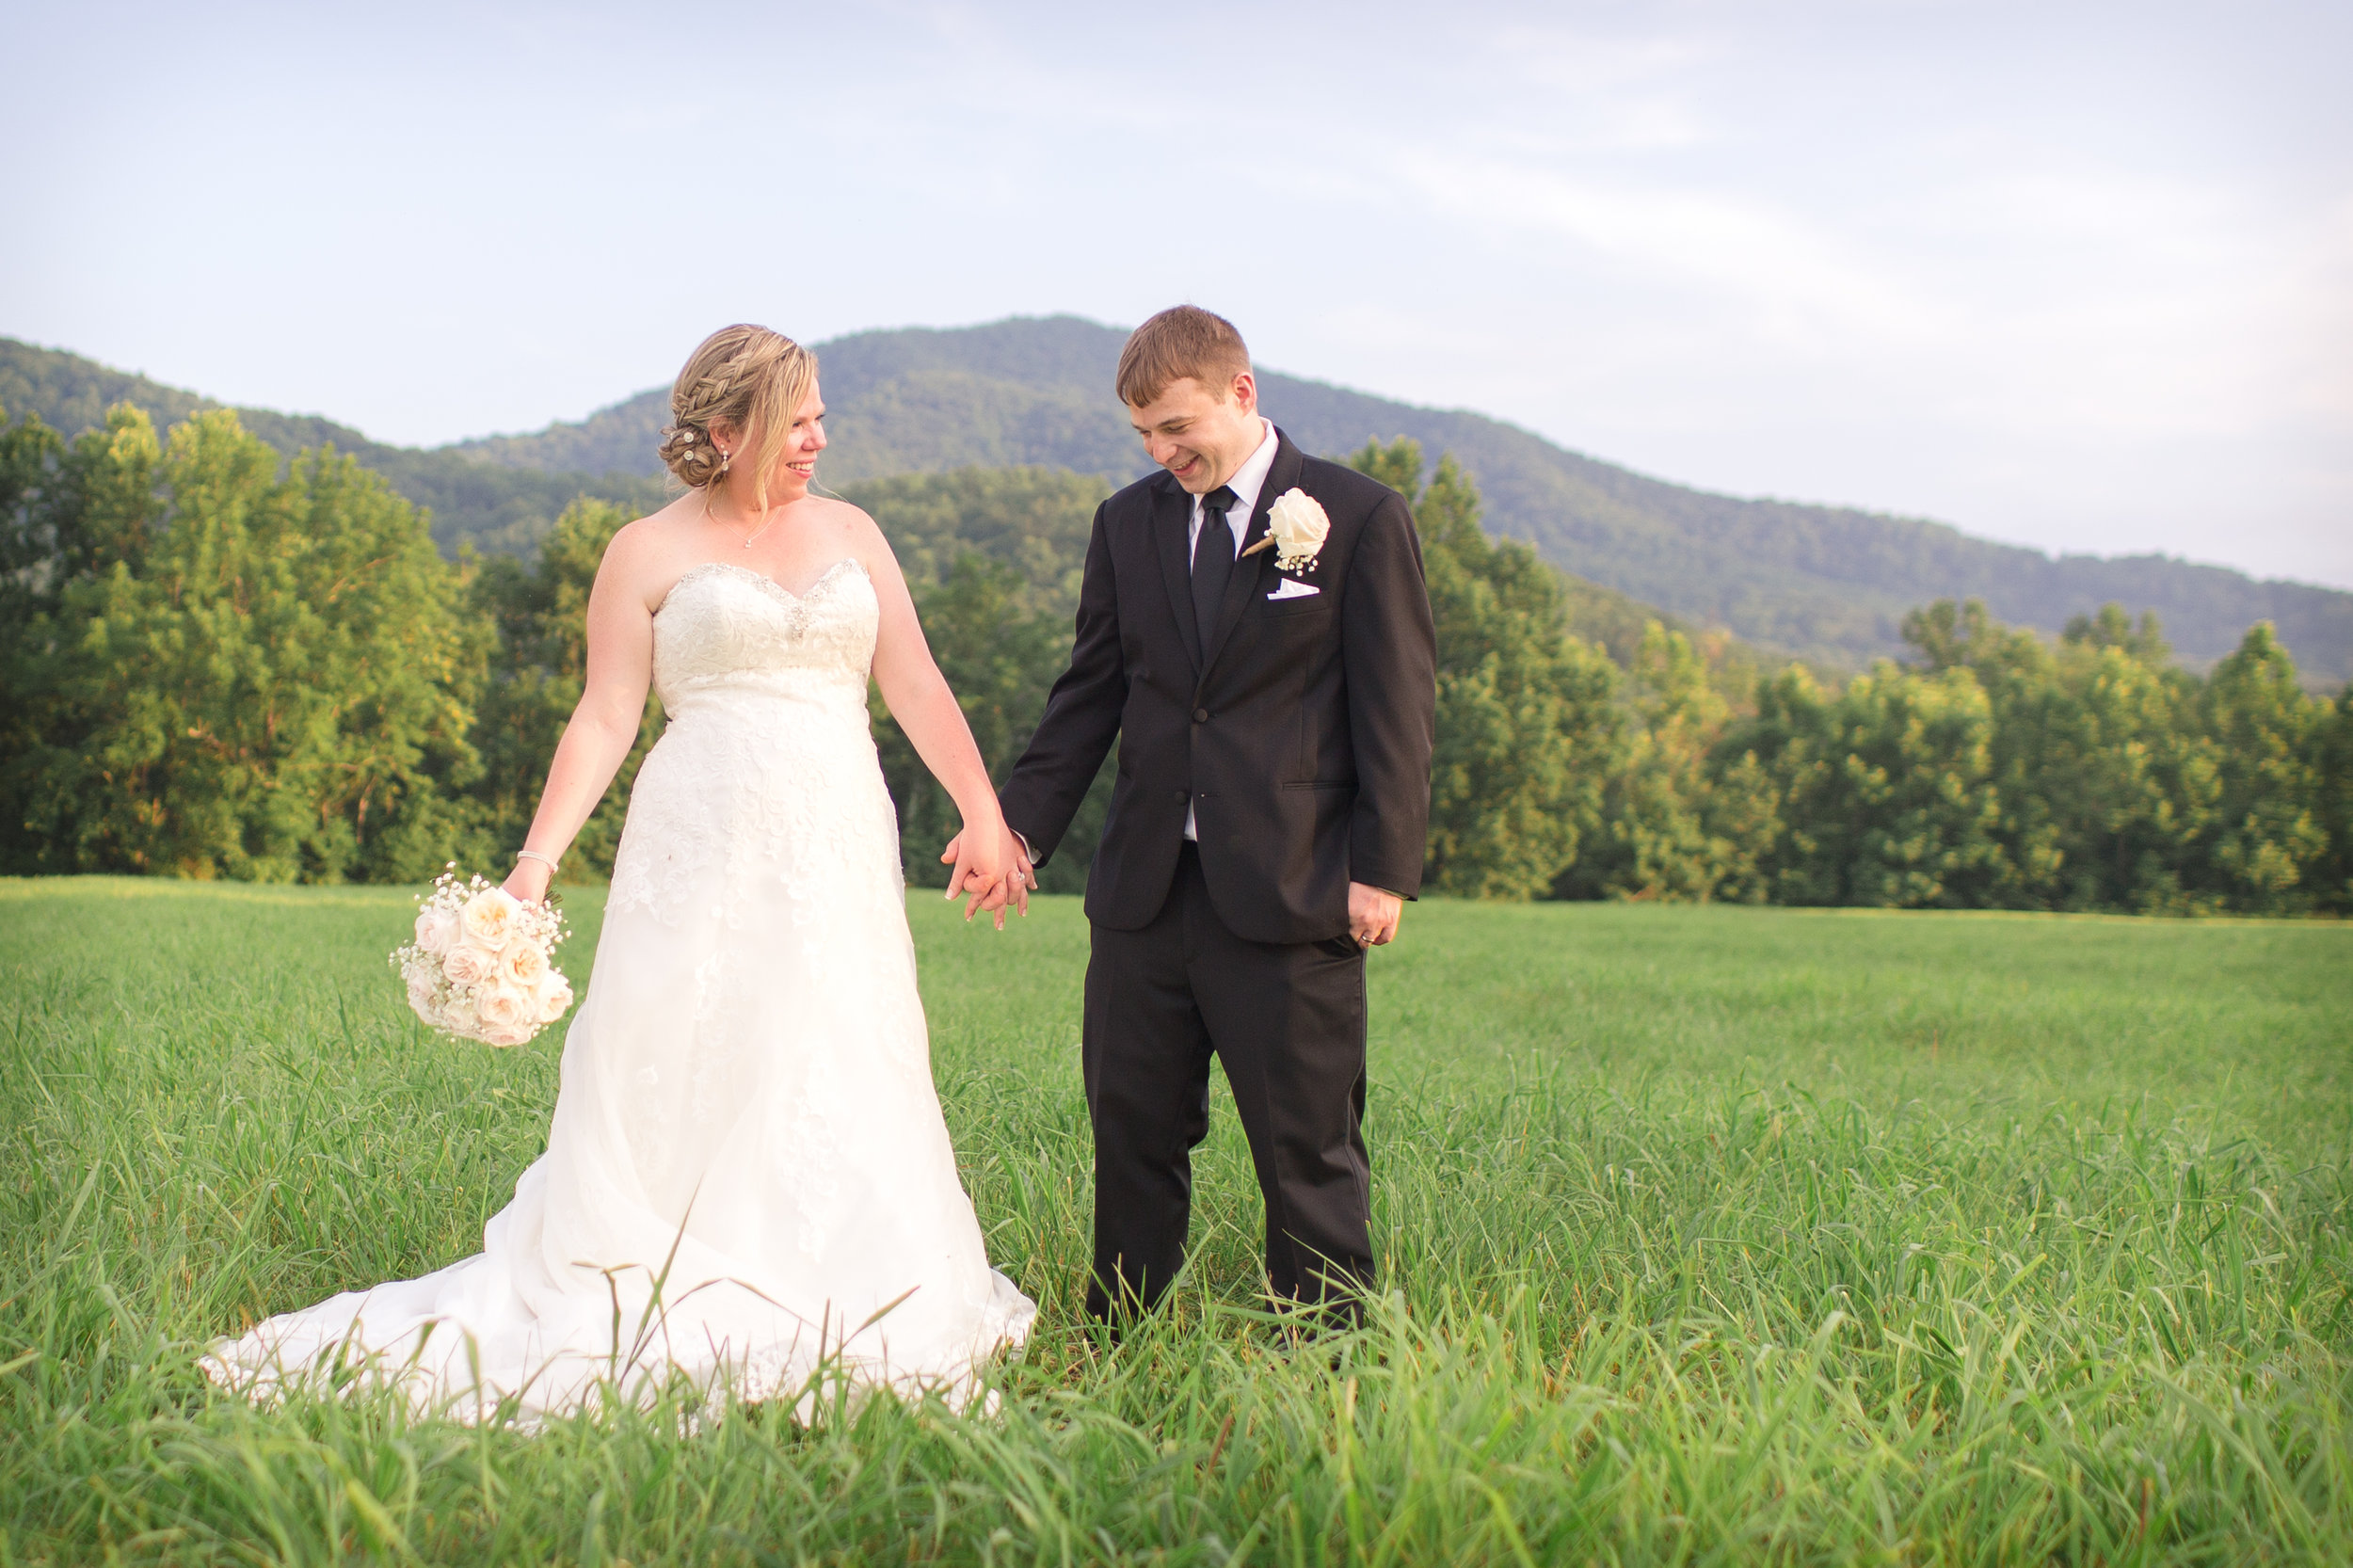 Boldrockweddingphotography.jpg